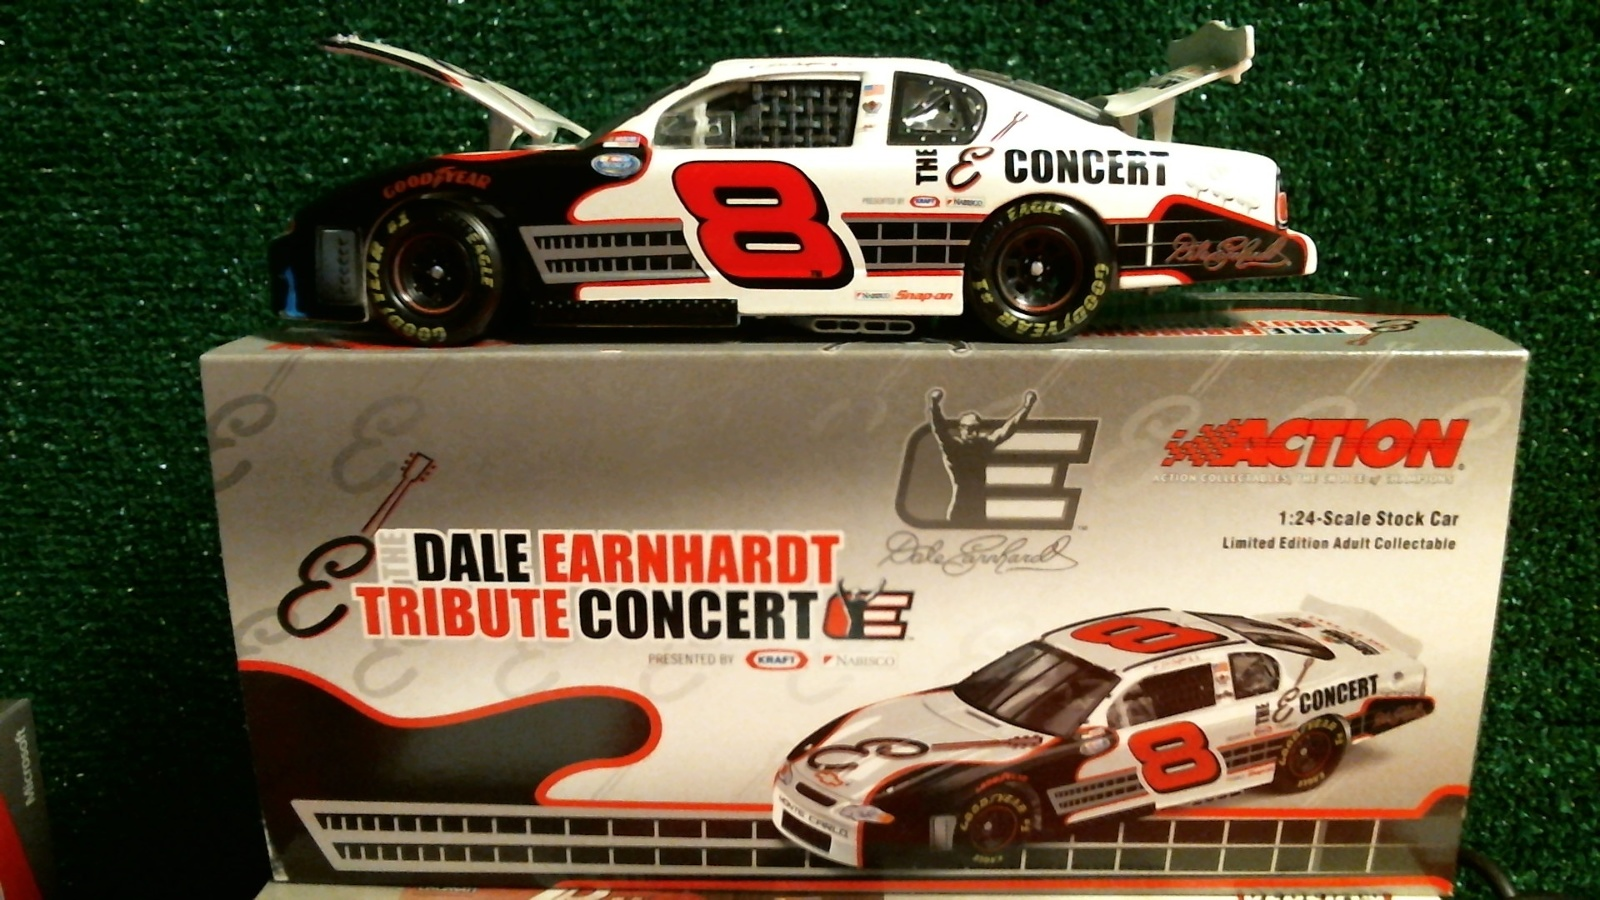 Dale Earnhardt Tribute: 2003 Dale Earnhardt Jr. #8 Tribute Concert 1/24 Die Cast